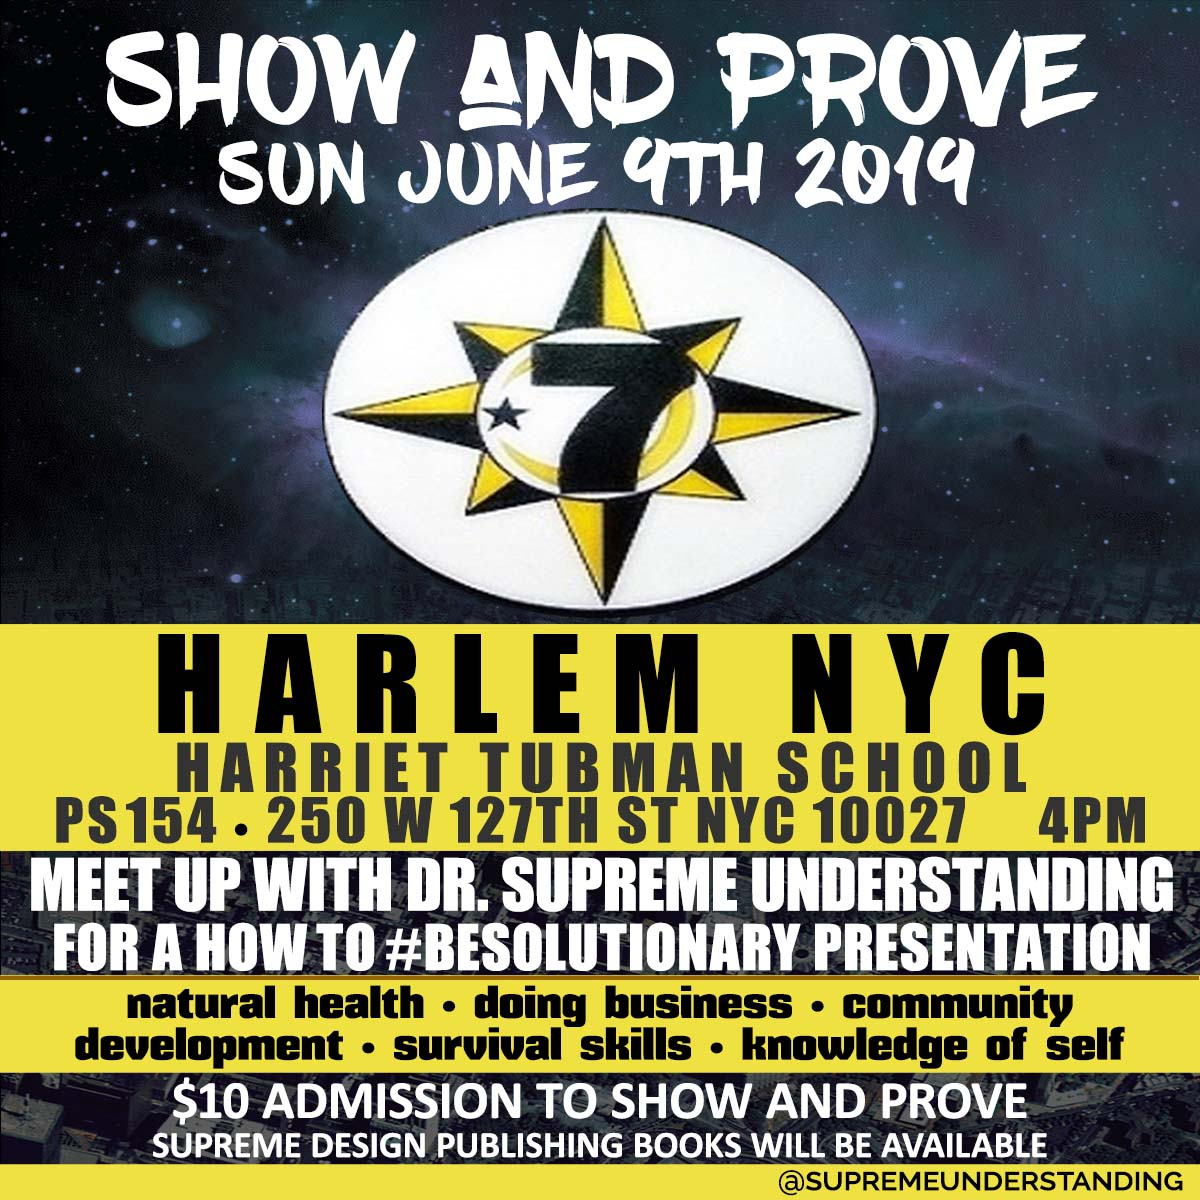 Meetup with Dr Supreme Understanding at Show and Prove in Harlem on Sun June 9th at 4pm at the Harriet Tubman School, 250 w 127th St Harlem NY 10027